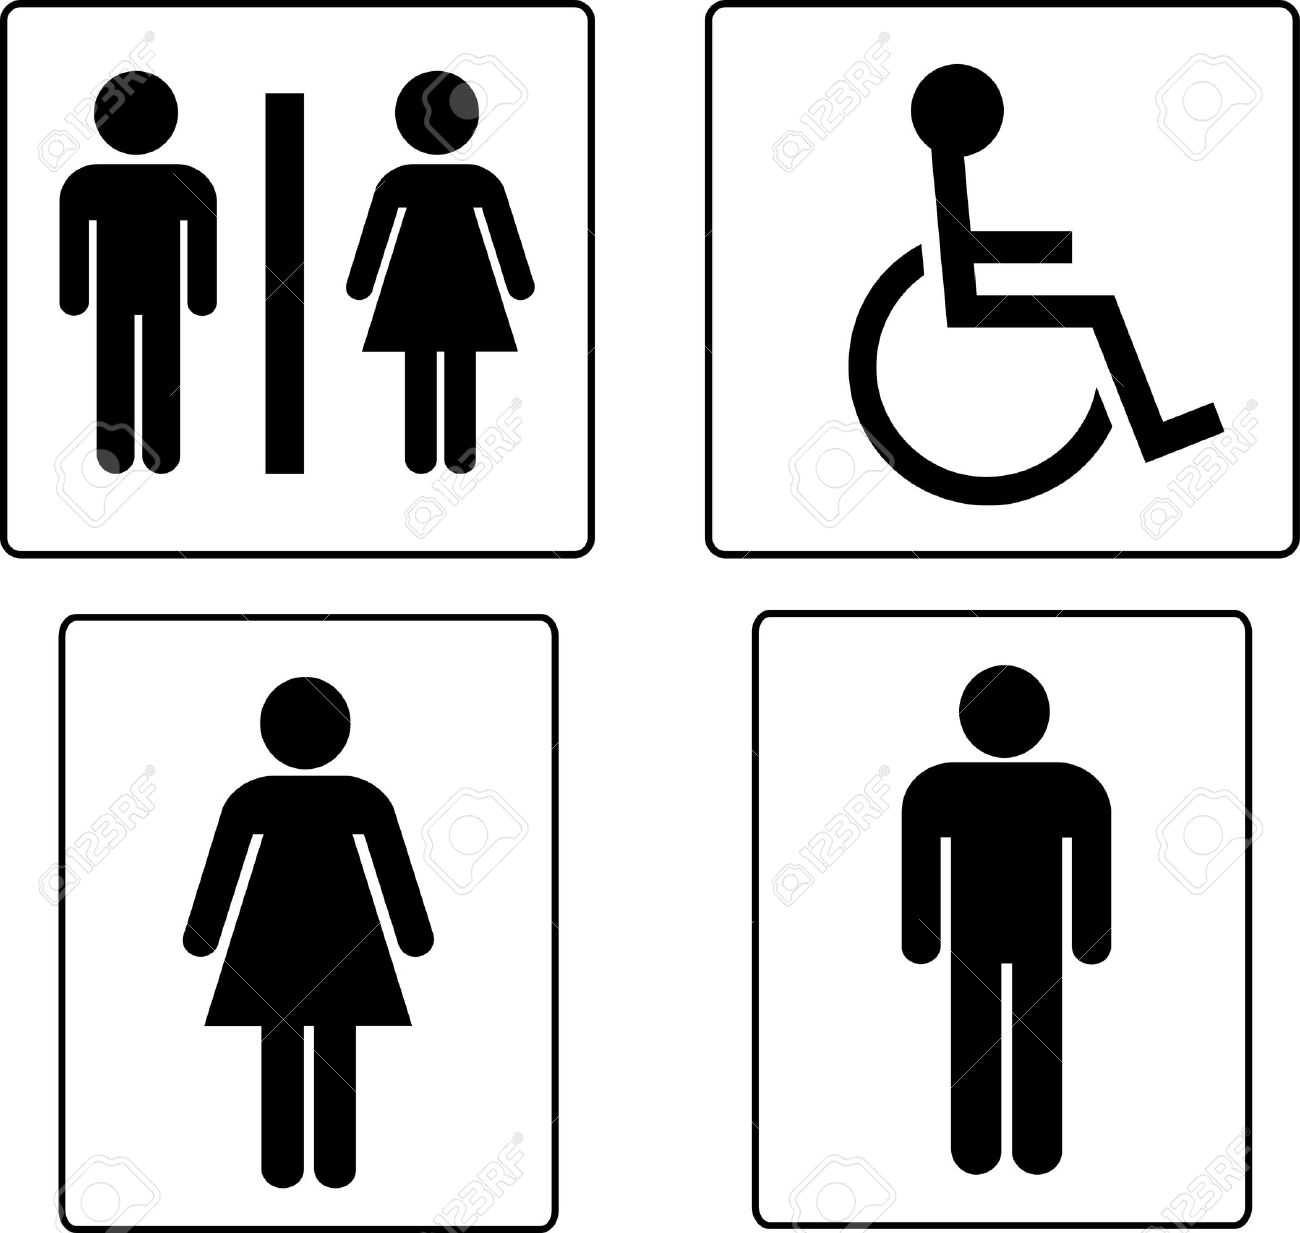 Set Of Restroom Symbols Stock Photo, Picture And Royalty Free Image ...